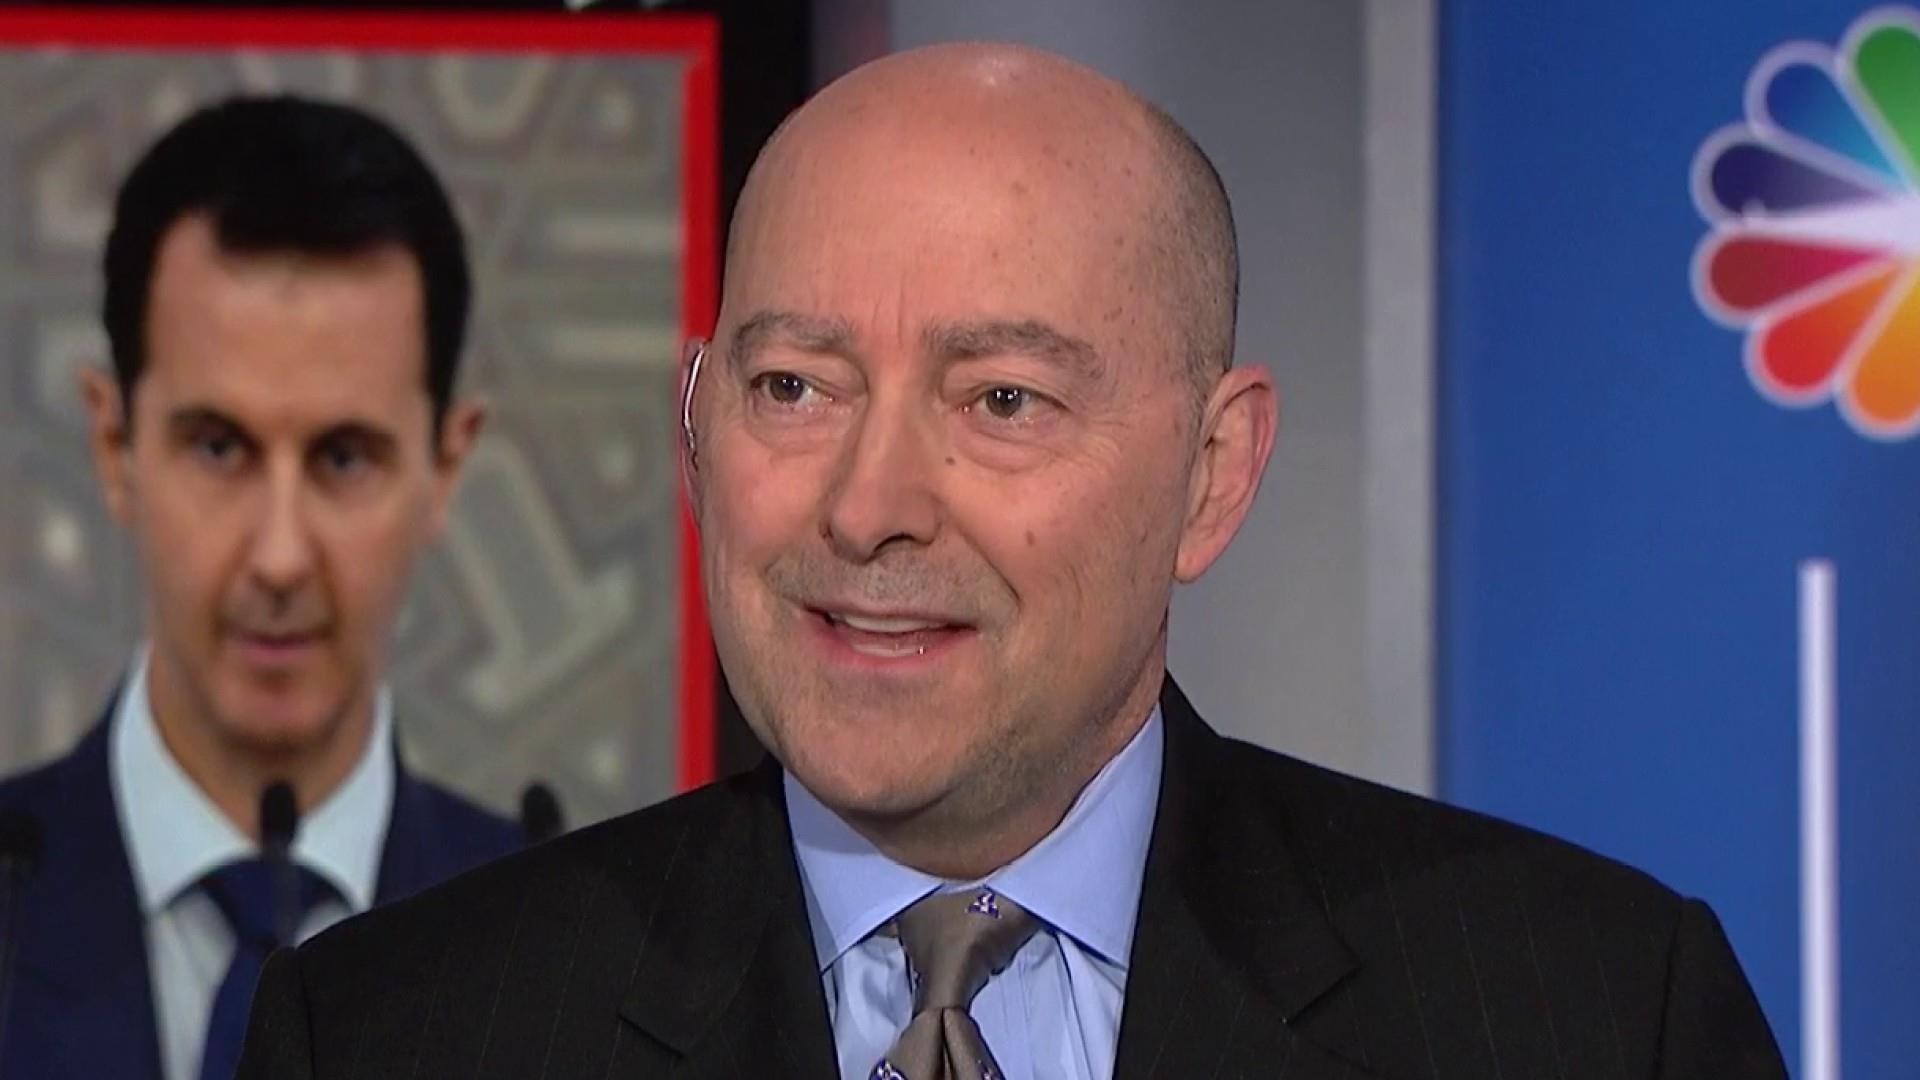 Adm. Stavridis on Syria: 'You want to go after chemical weapons capabilities'